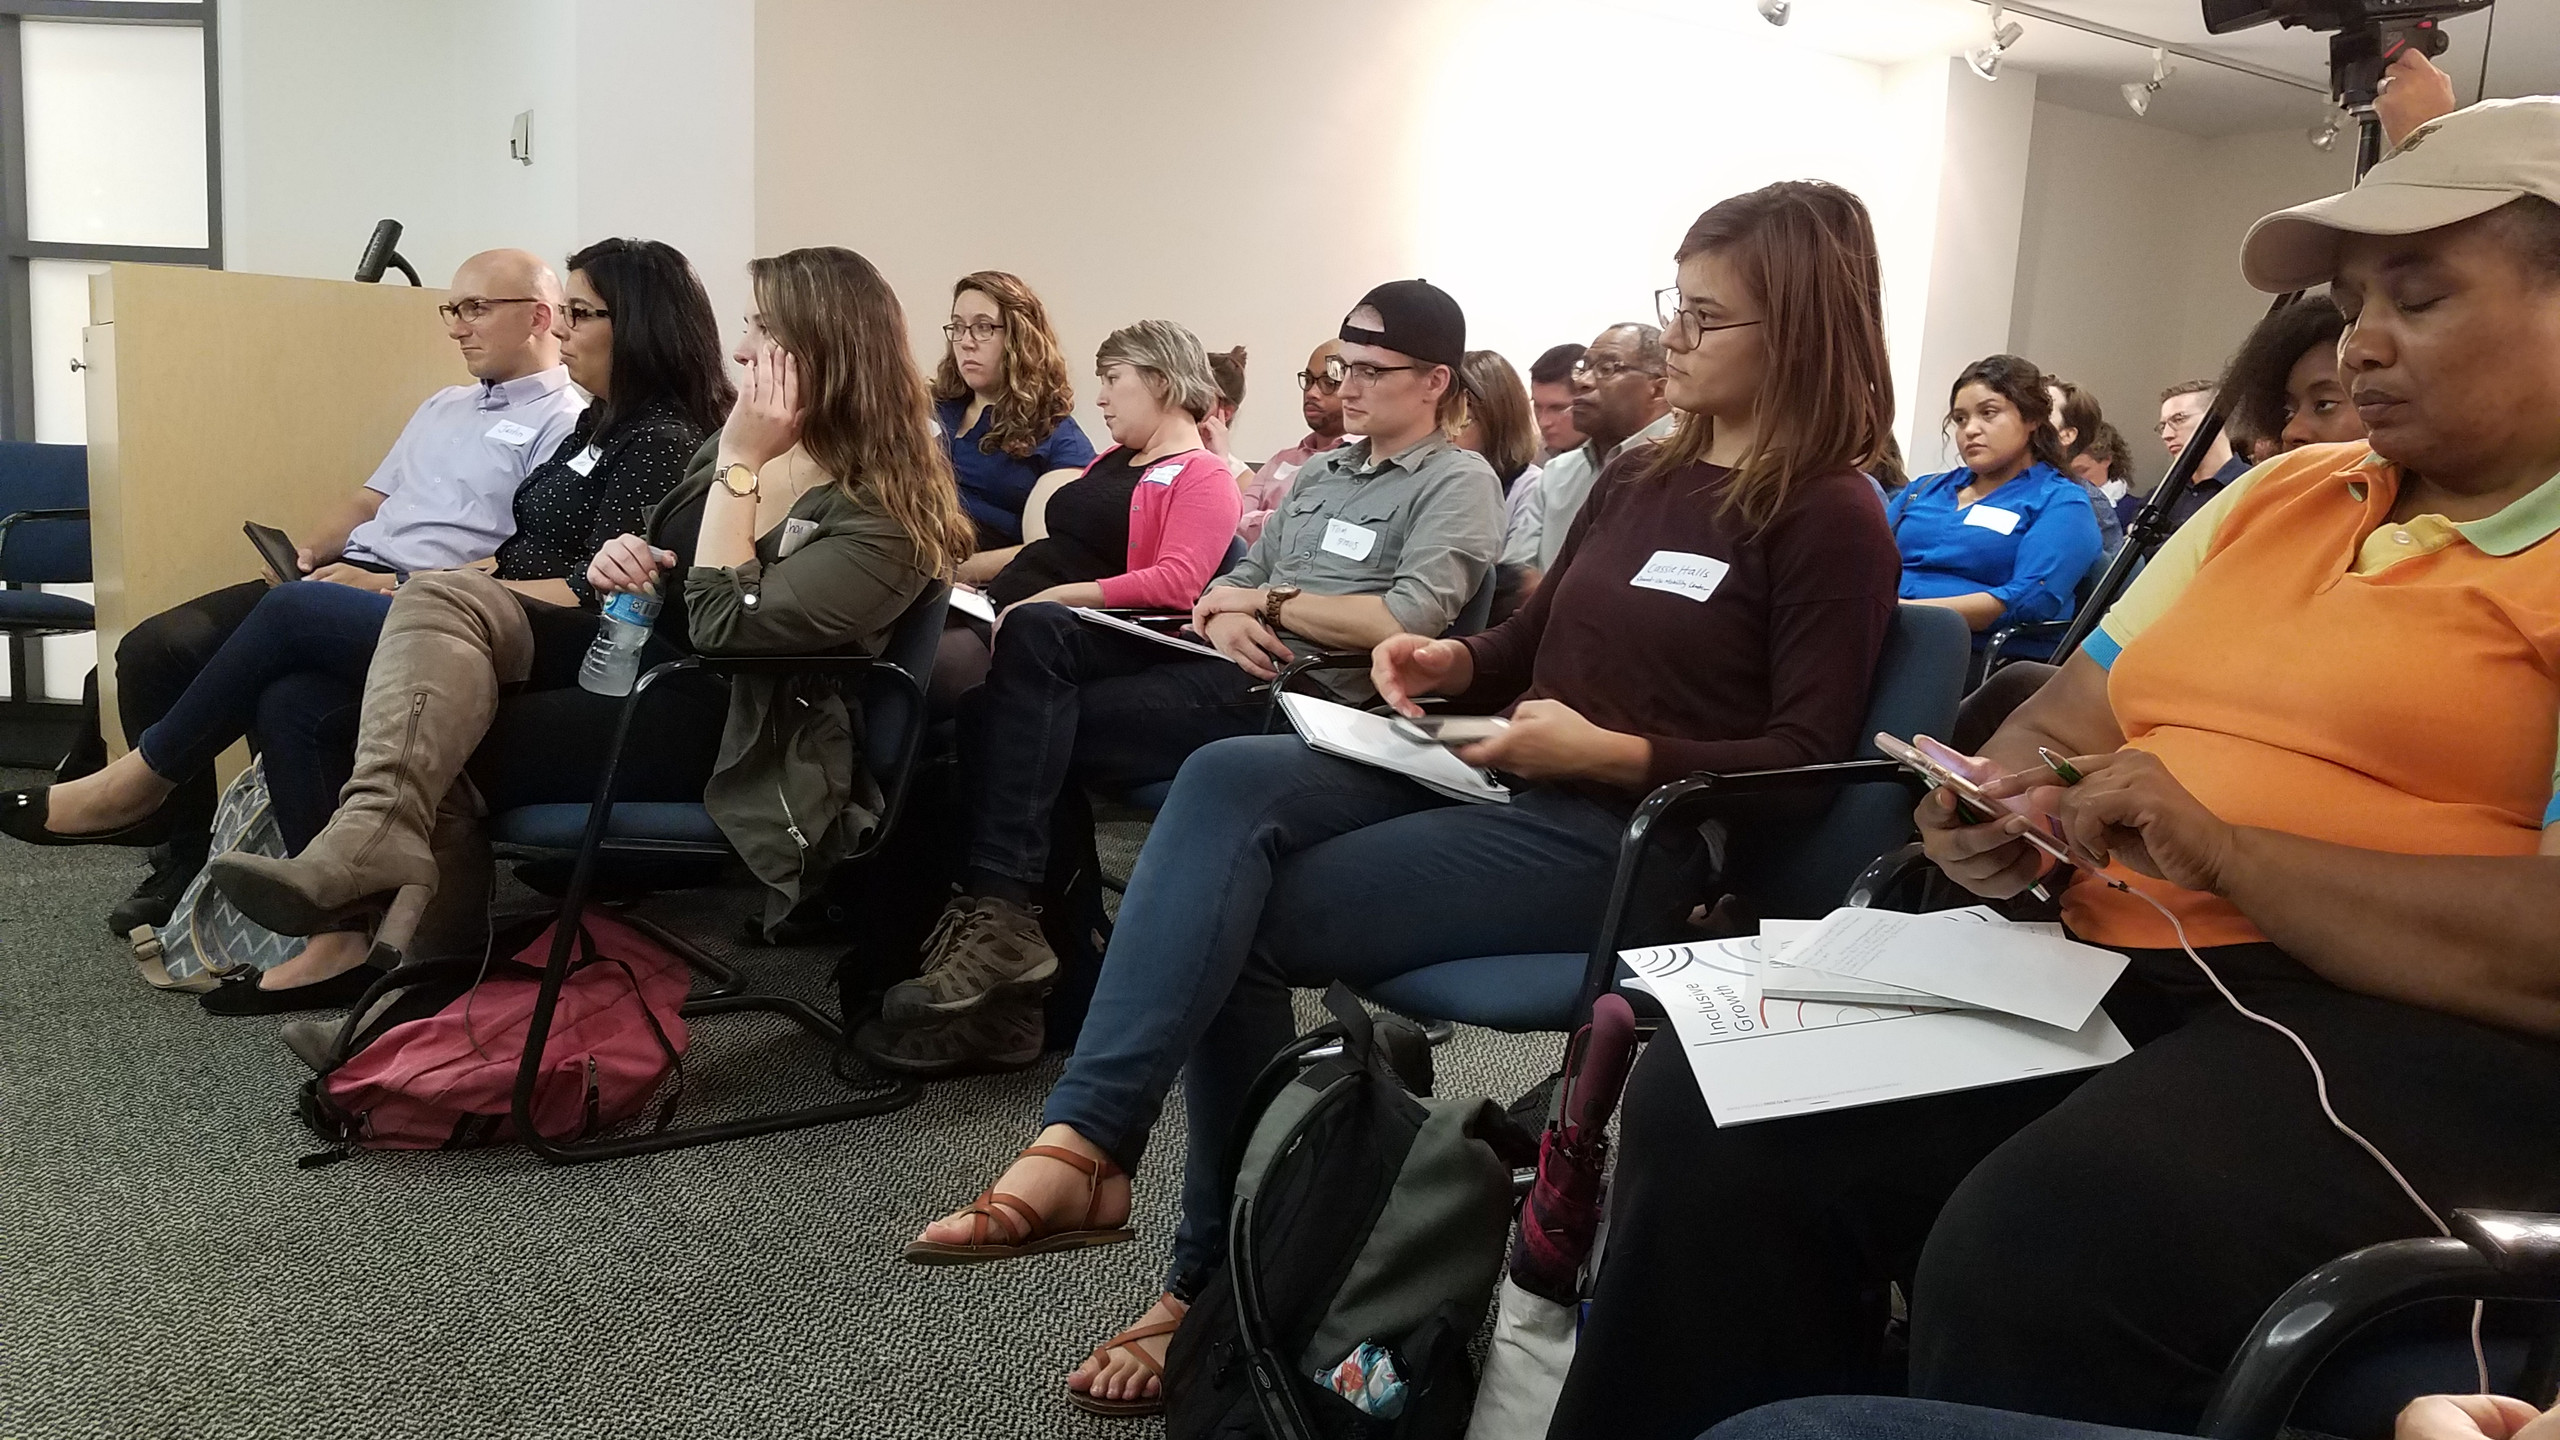 APA-IL Diversity Panel audience - October 5, 2017 (photo by Jake Seid, AICP)